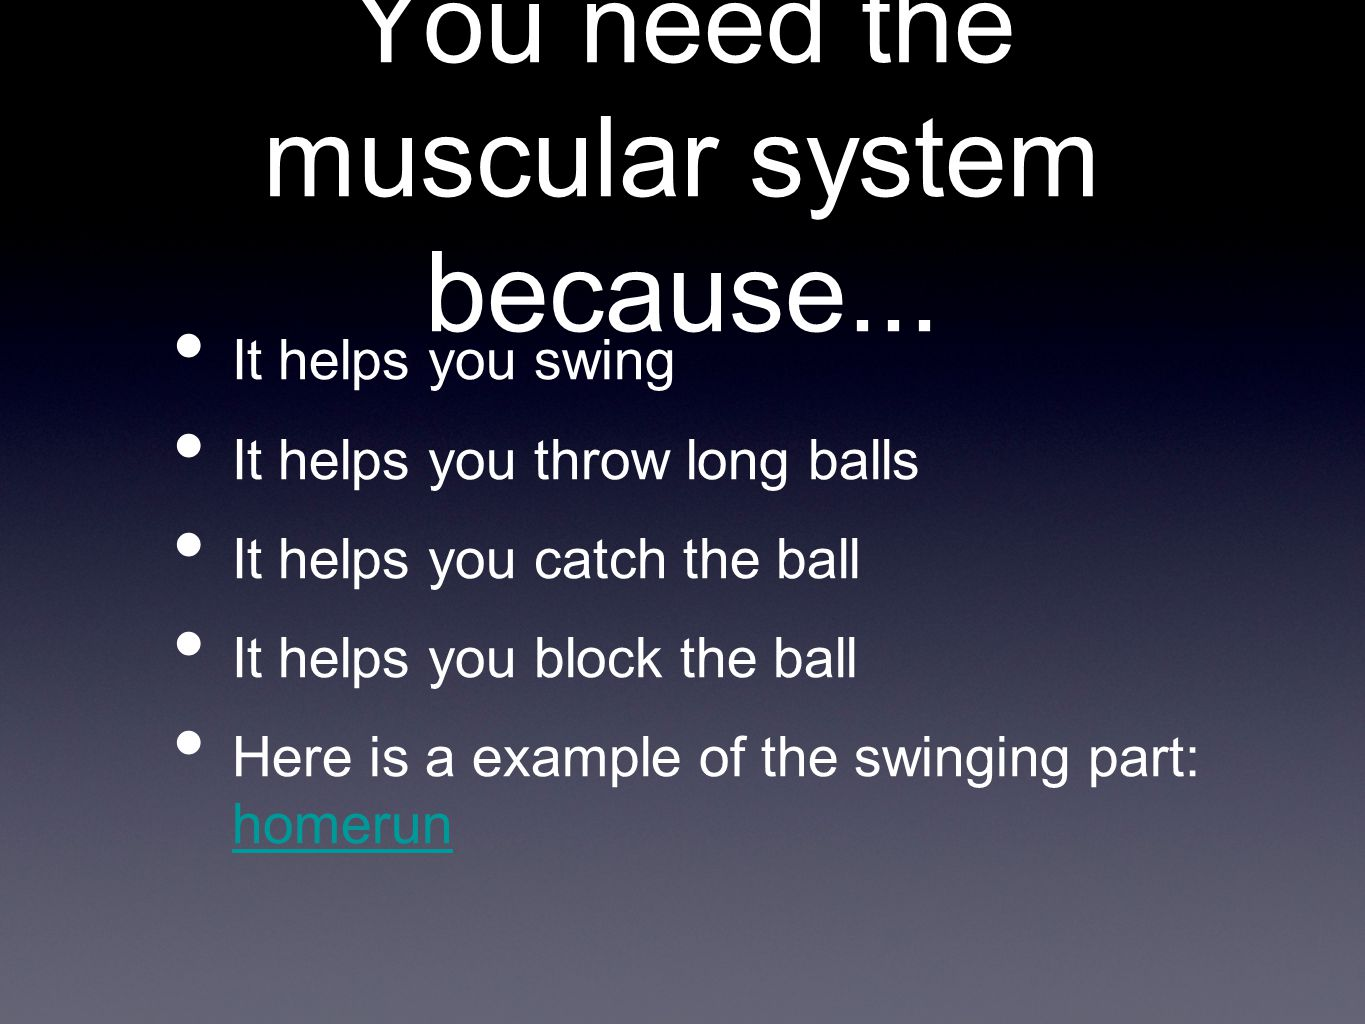 You need the muscular system because...